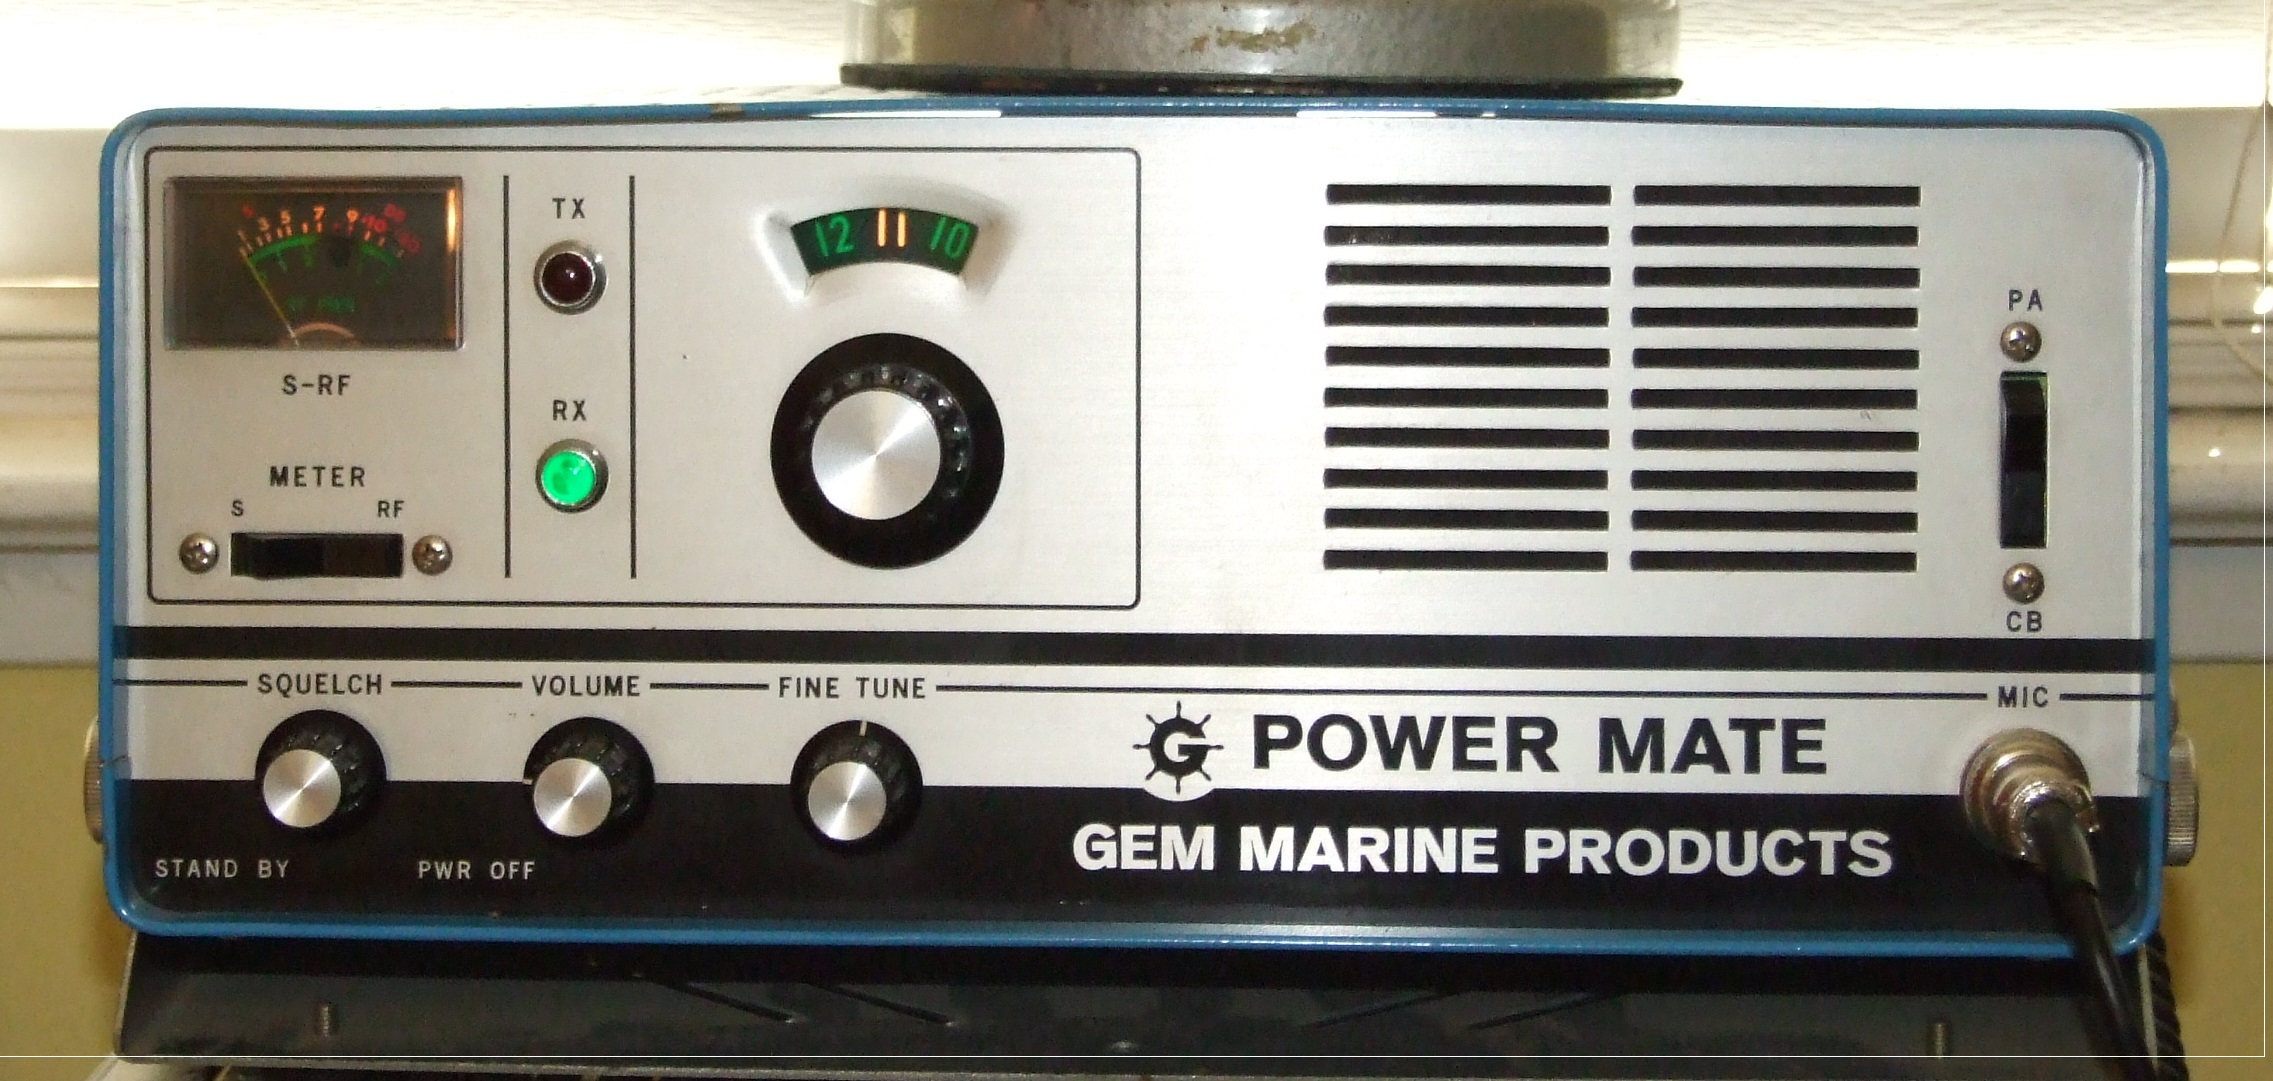 Gem Marine Power Mate - photo from the collection of Chris.